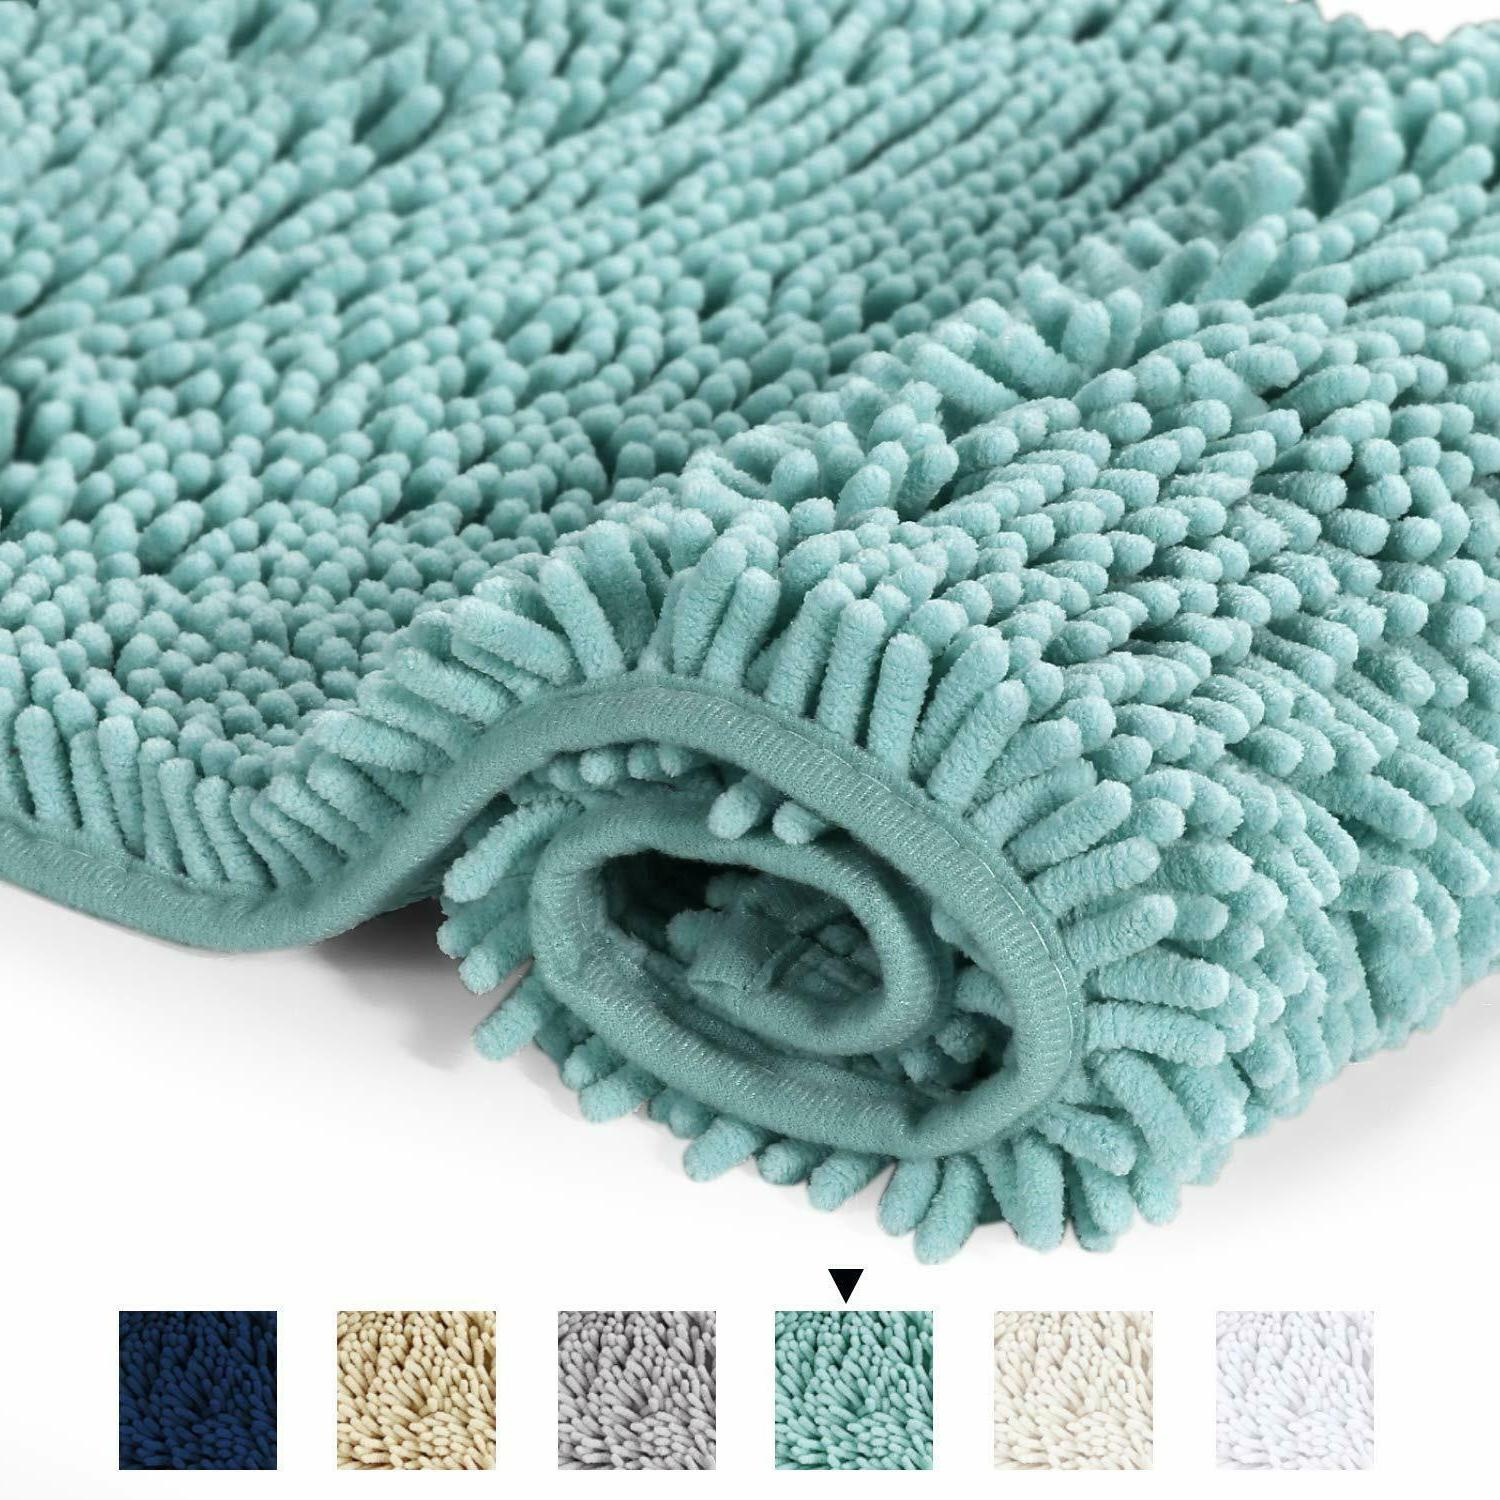 Bathroom Rug Shower Mat Plush Microfiber